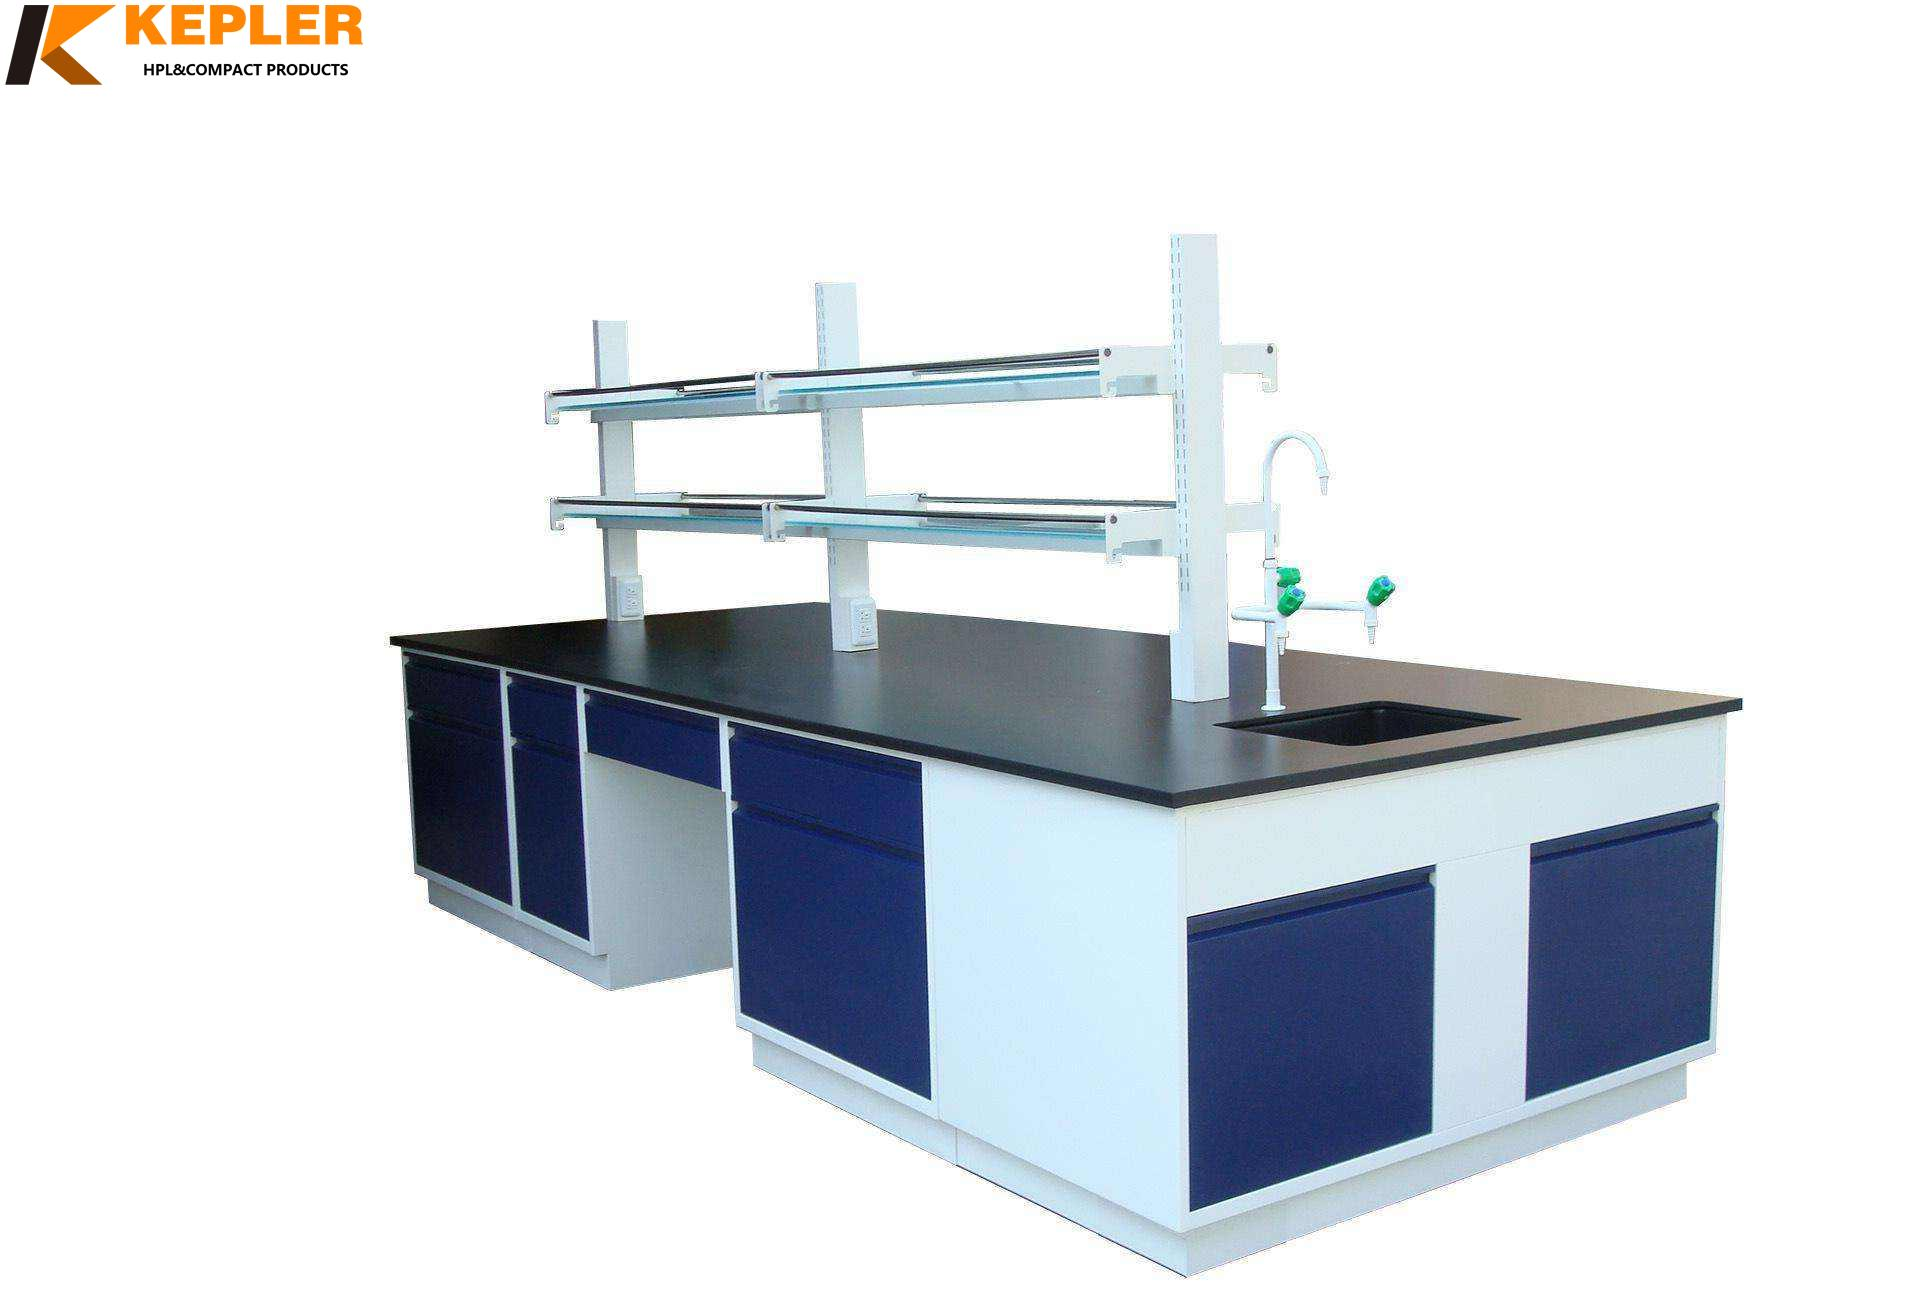 Kepler clean touch antibacterial chemical resistant compact hpl laboratory table top panel manufacturer